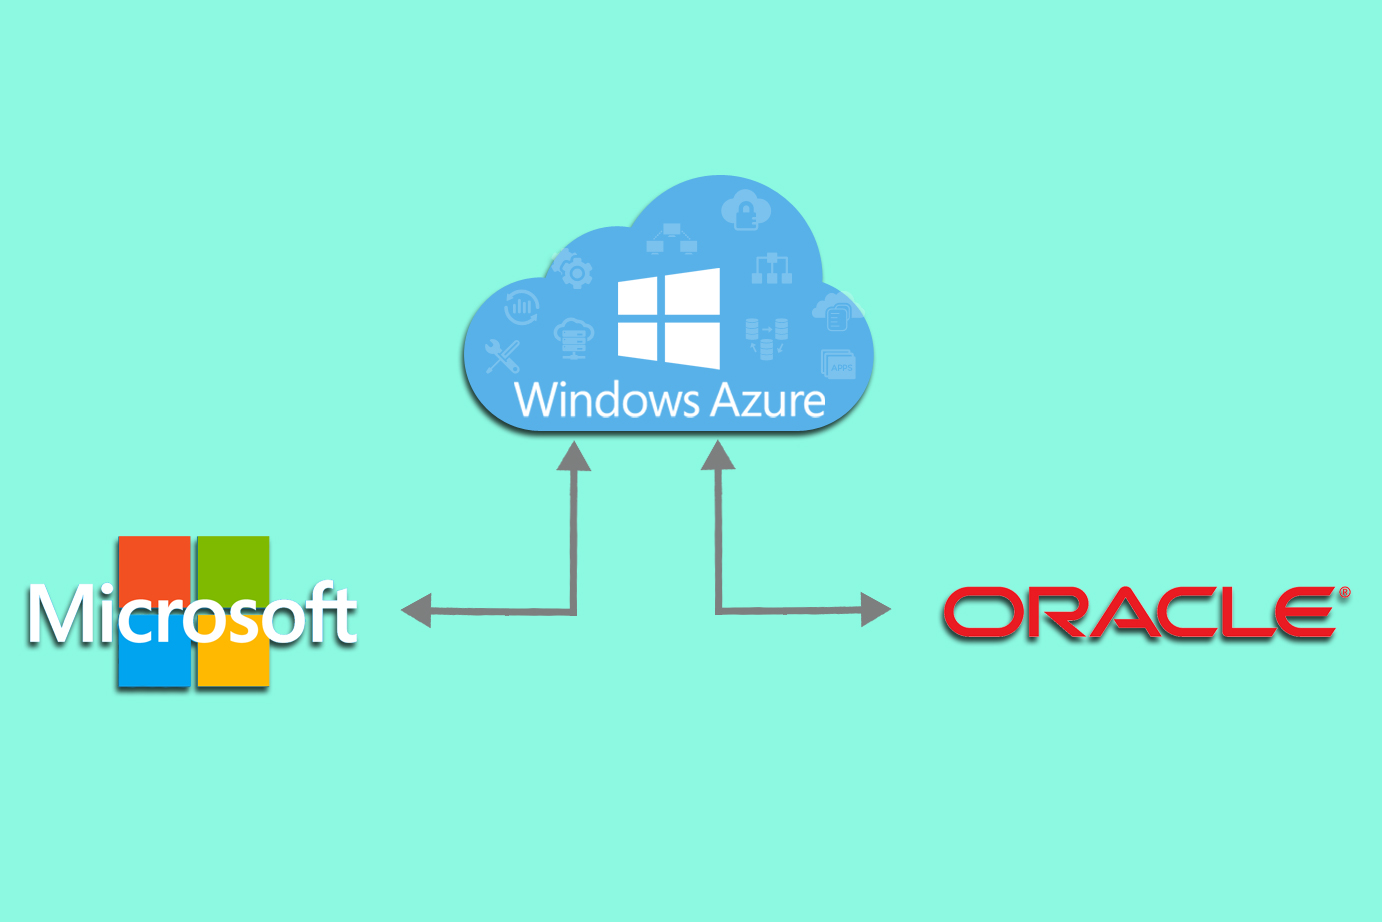 microsoft-and-oracle-with-azure.jpg